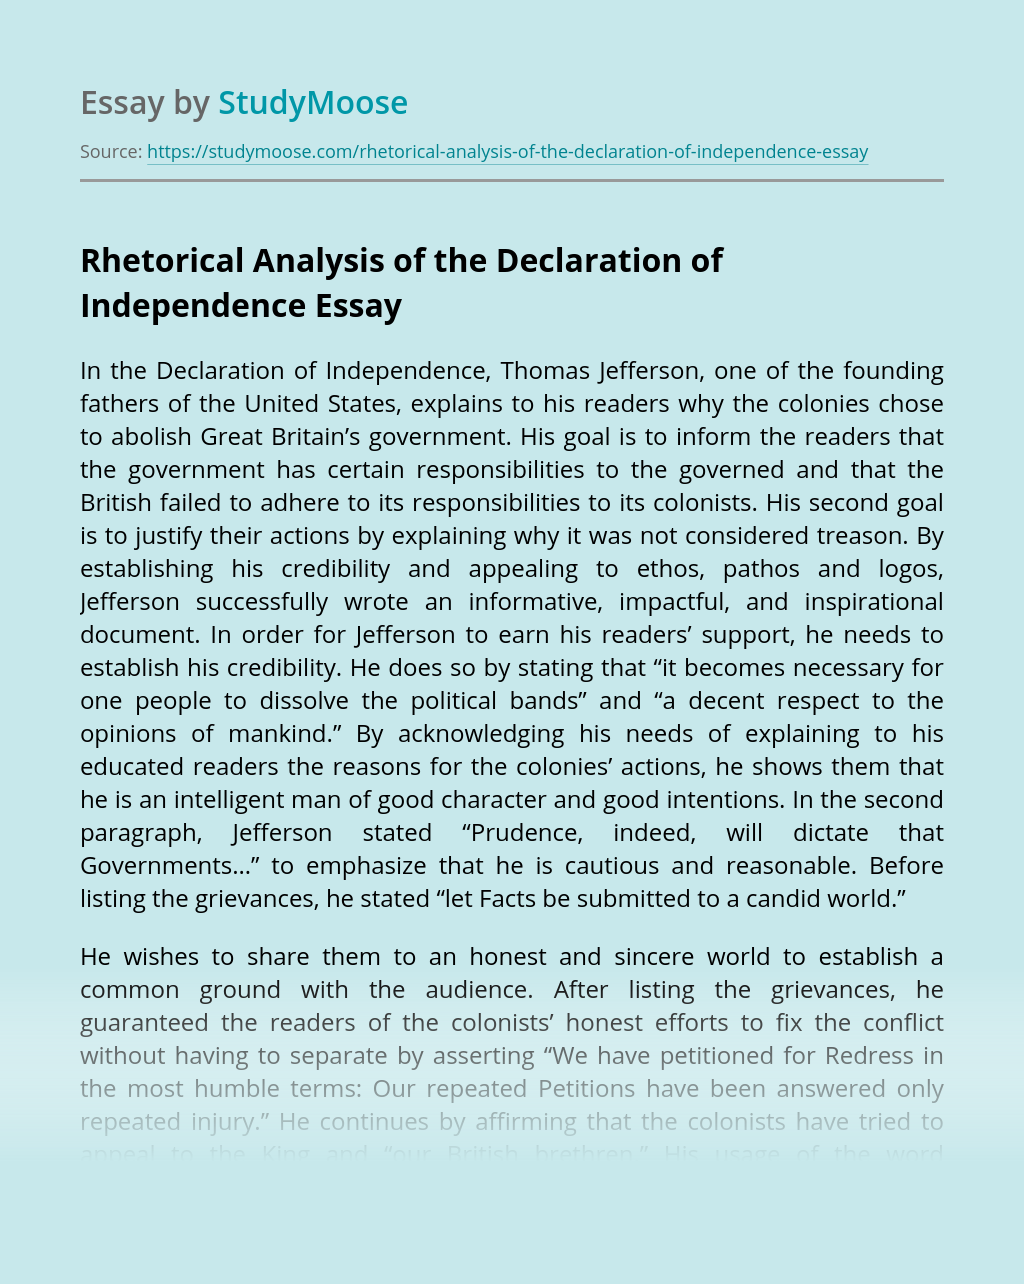 Rhetorical Analysis of the Declaration of Independence